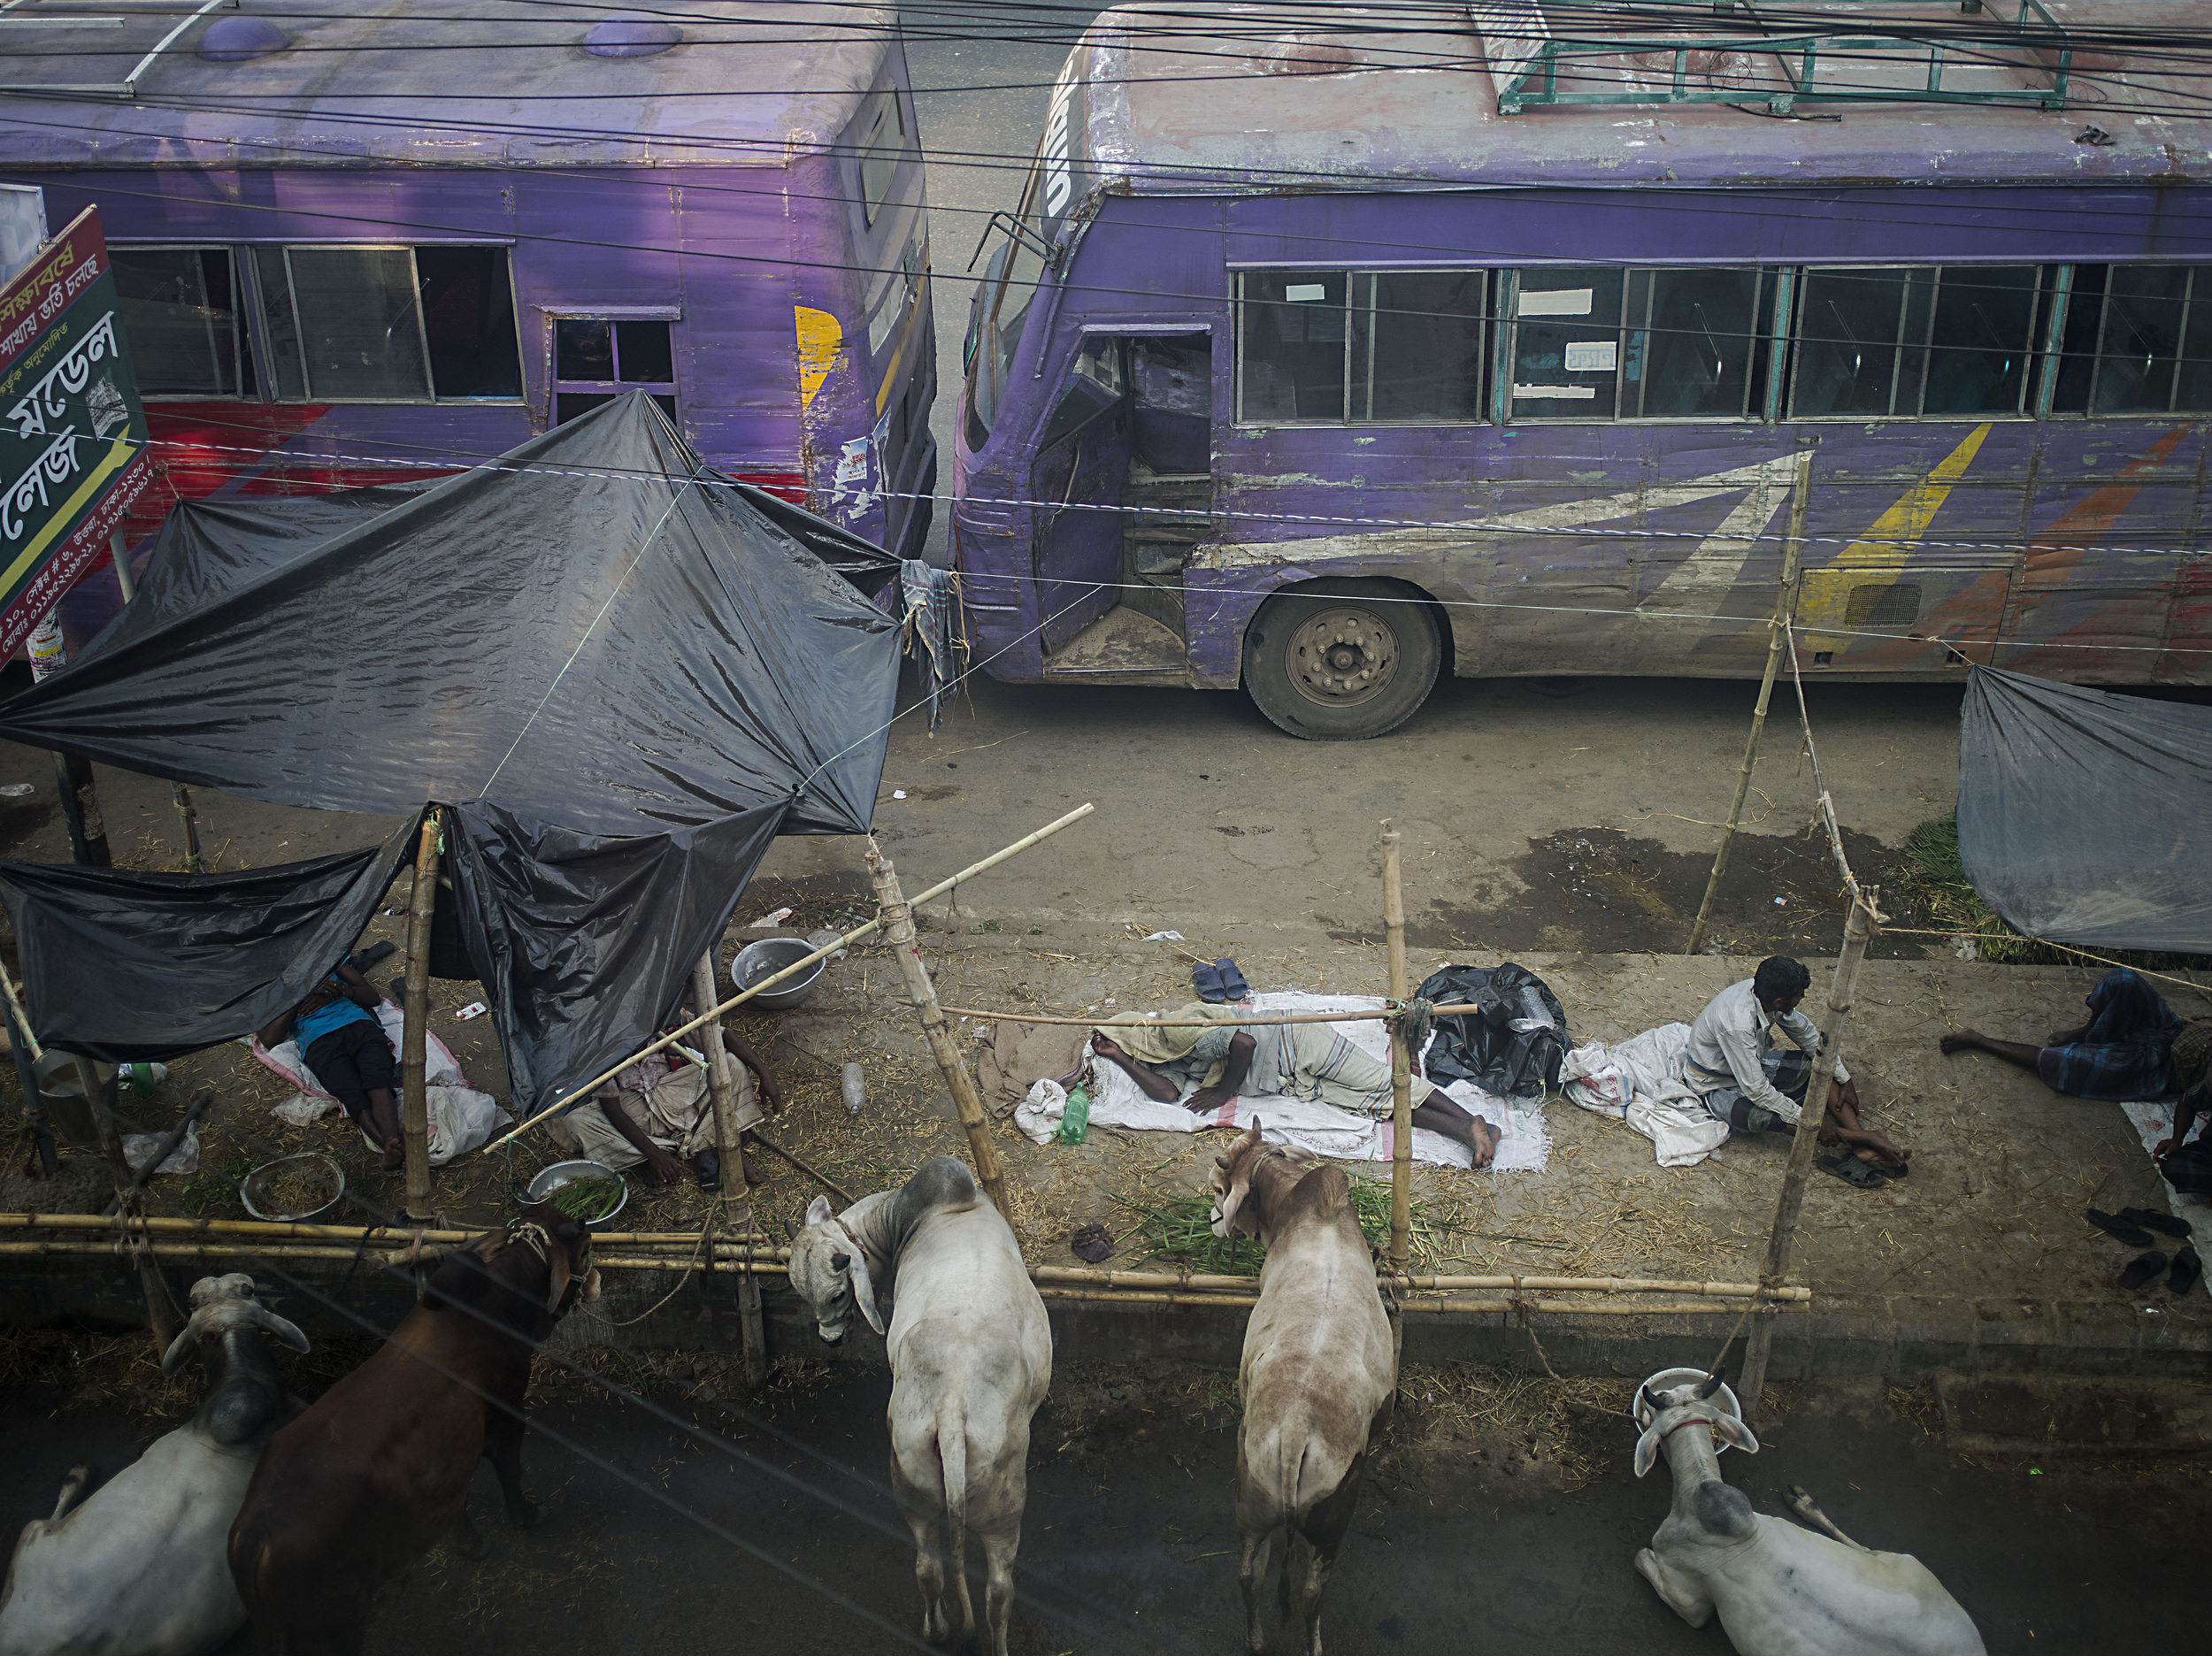 Farmers sleep out for days trying to sell their cow for Eid al-Adha.